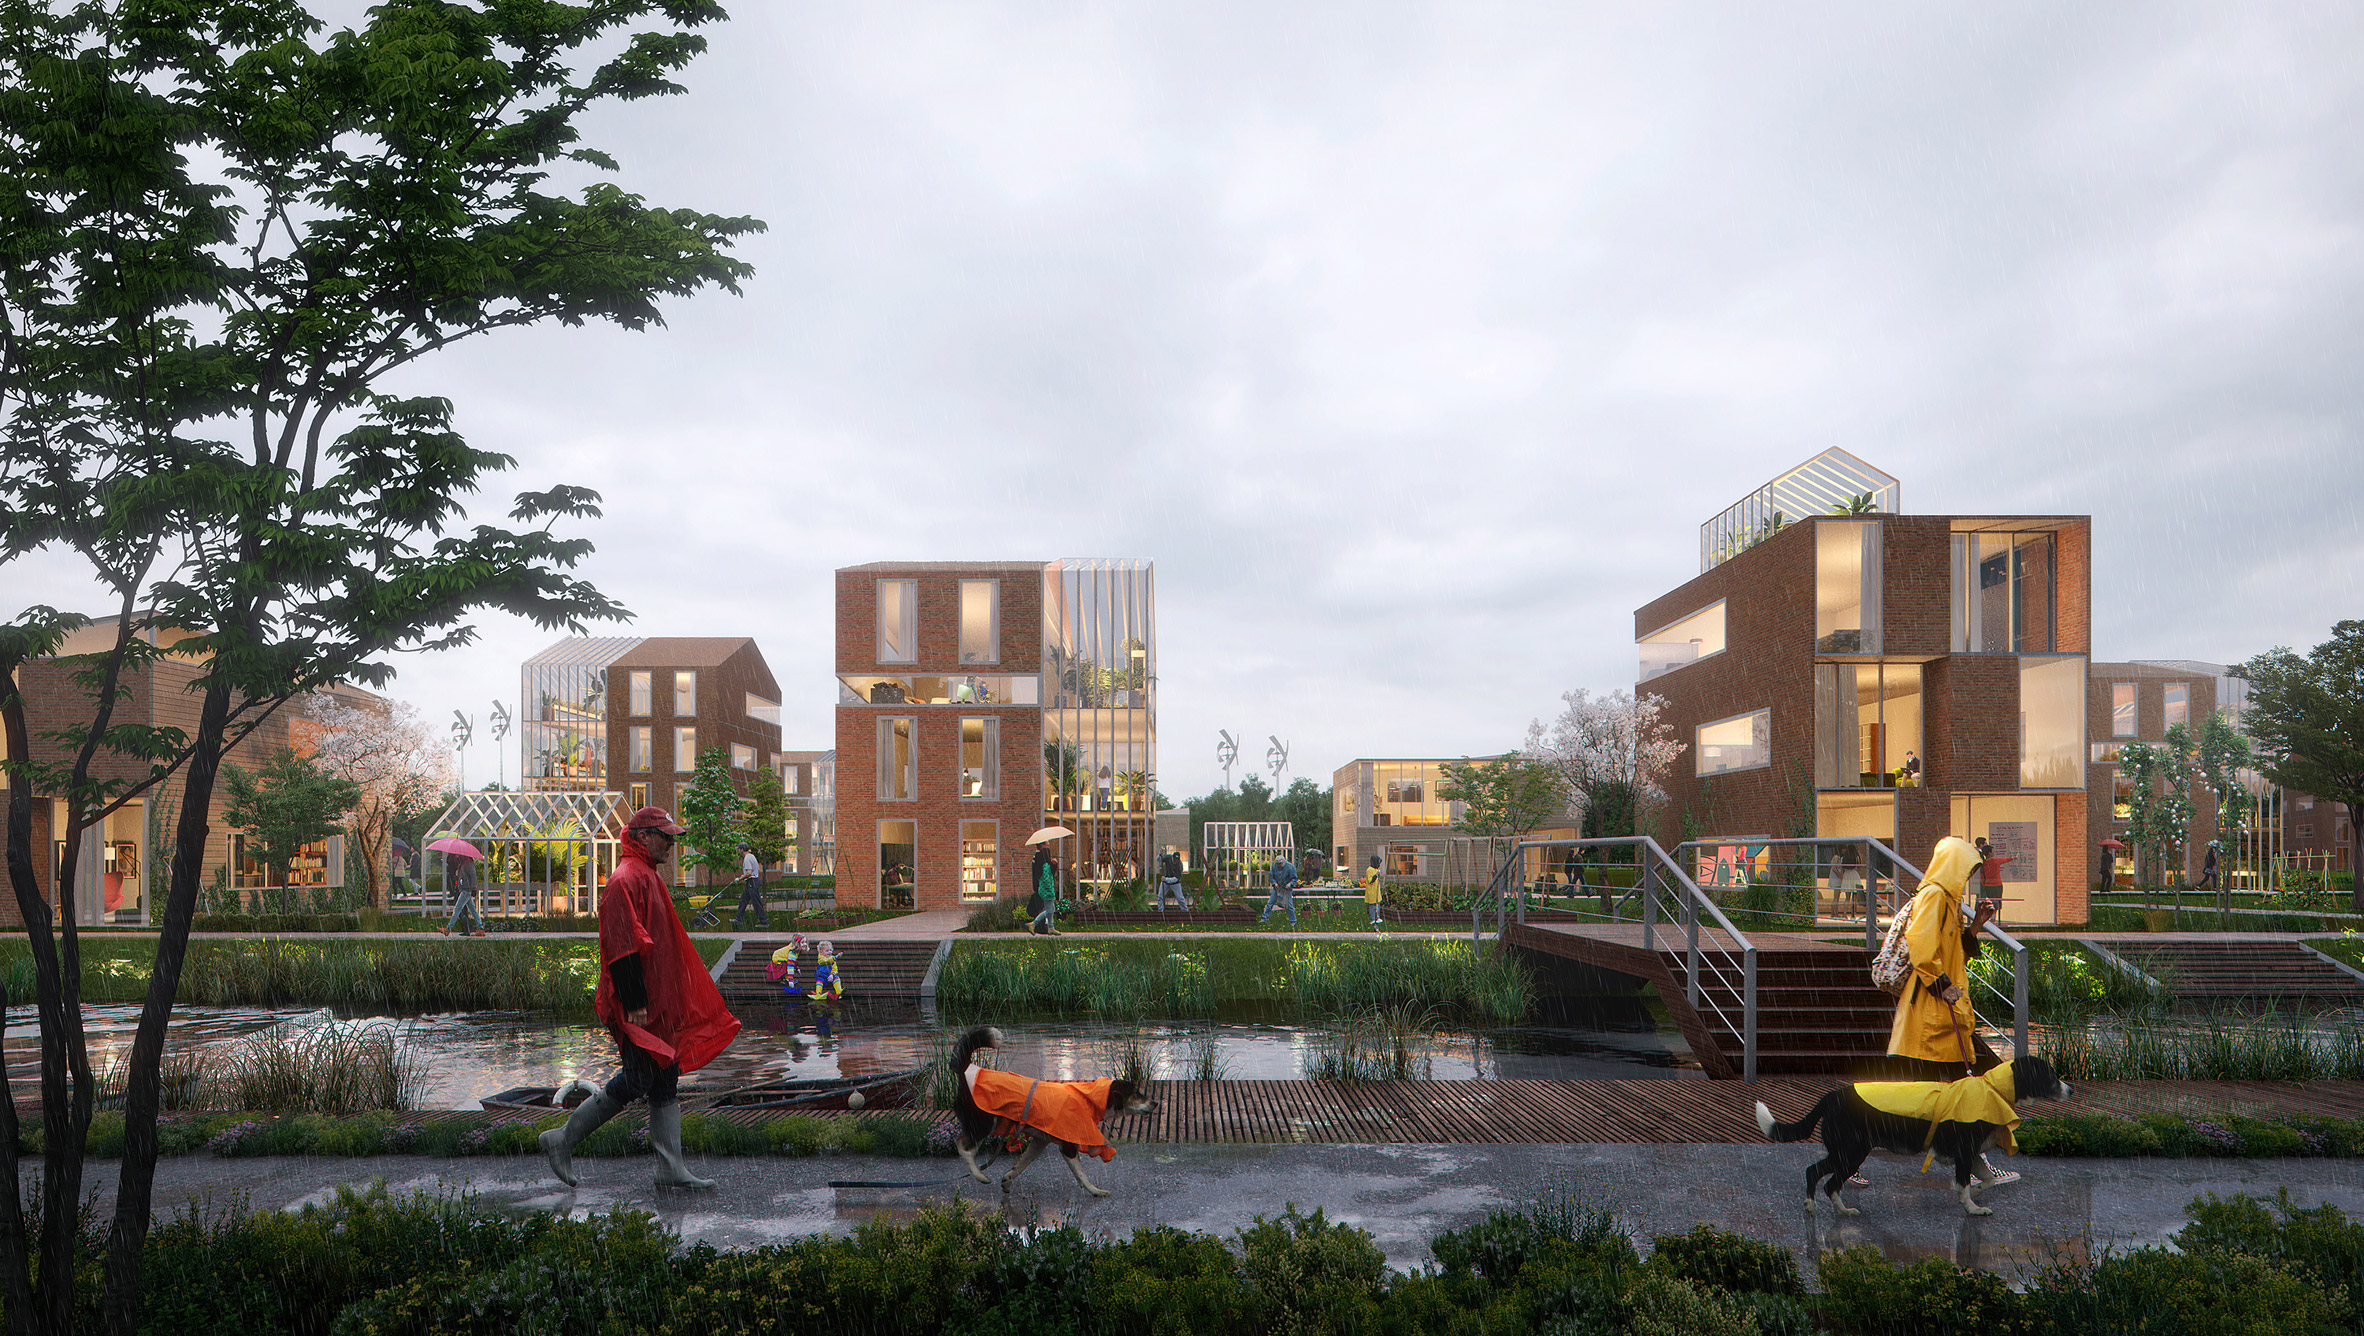 Brainport Smart District masterplan for smart neighbourhood by UNStudio for Netherlands